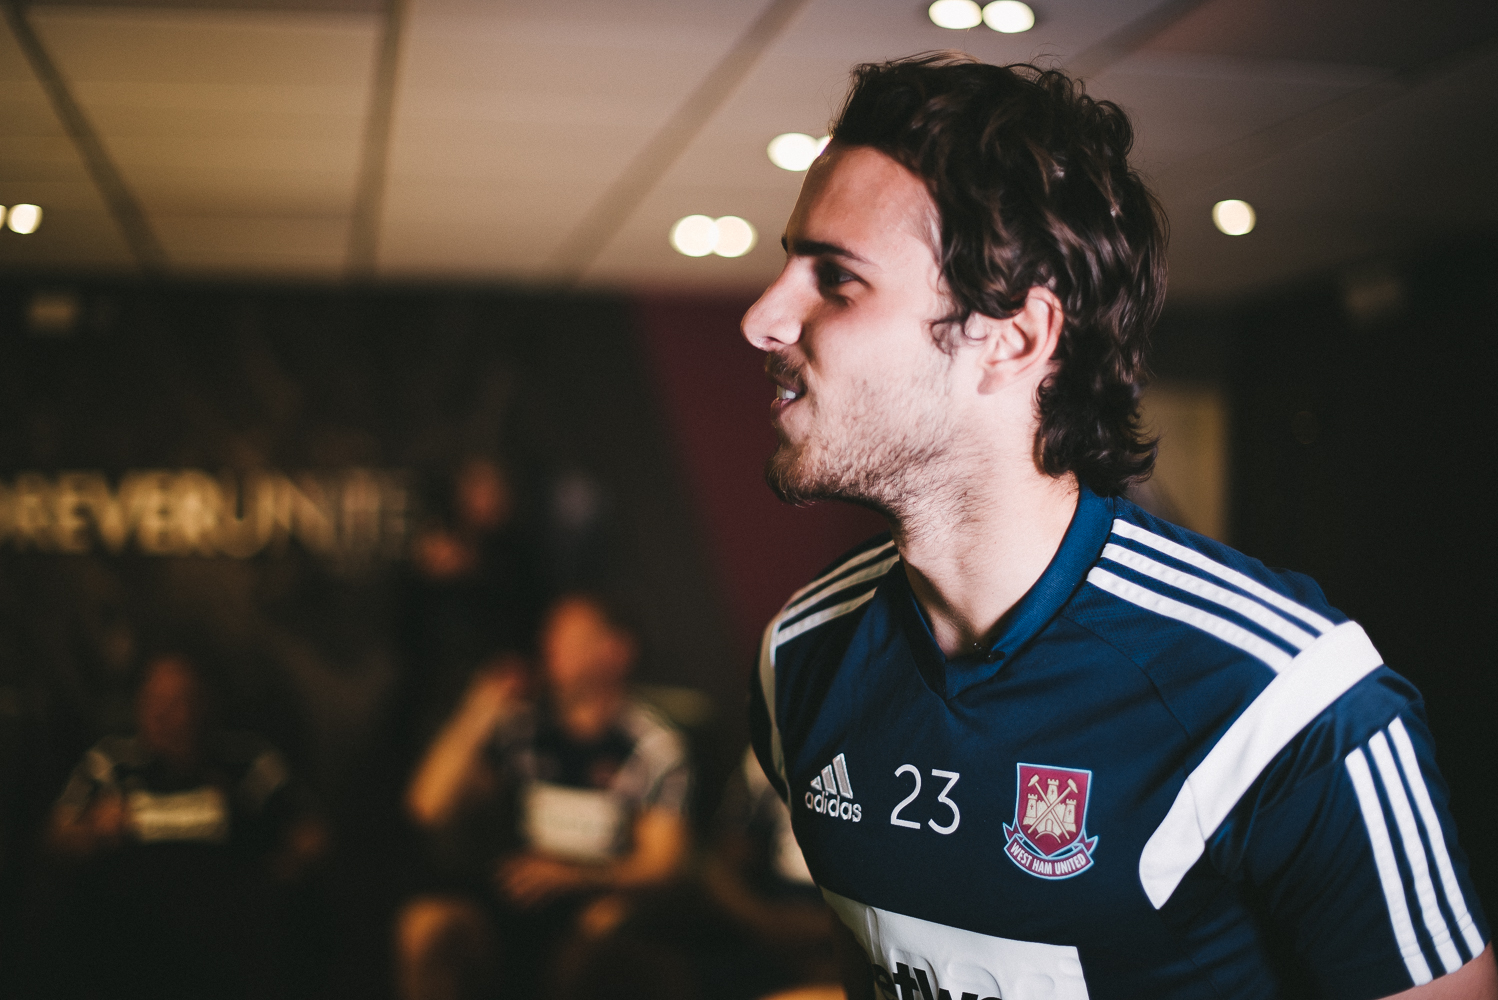 Betway_WestHam_Alex_Wallace_Photography_0212.jpg